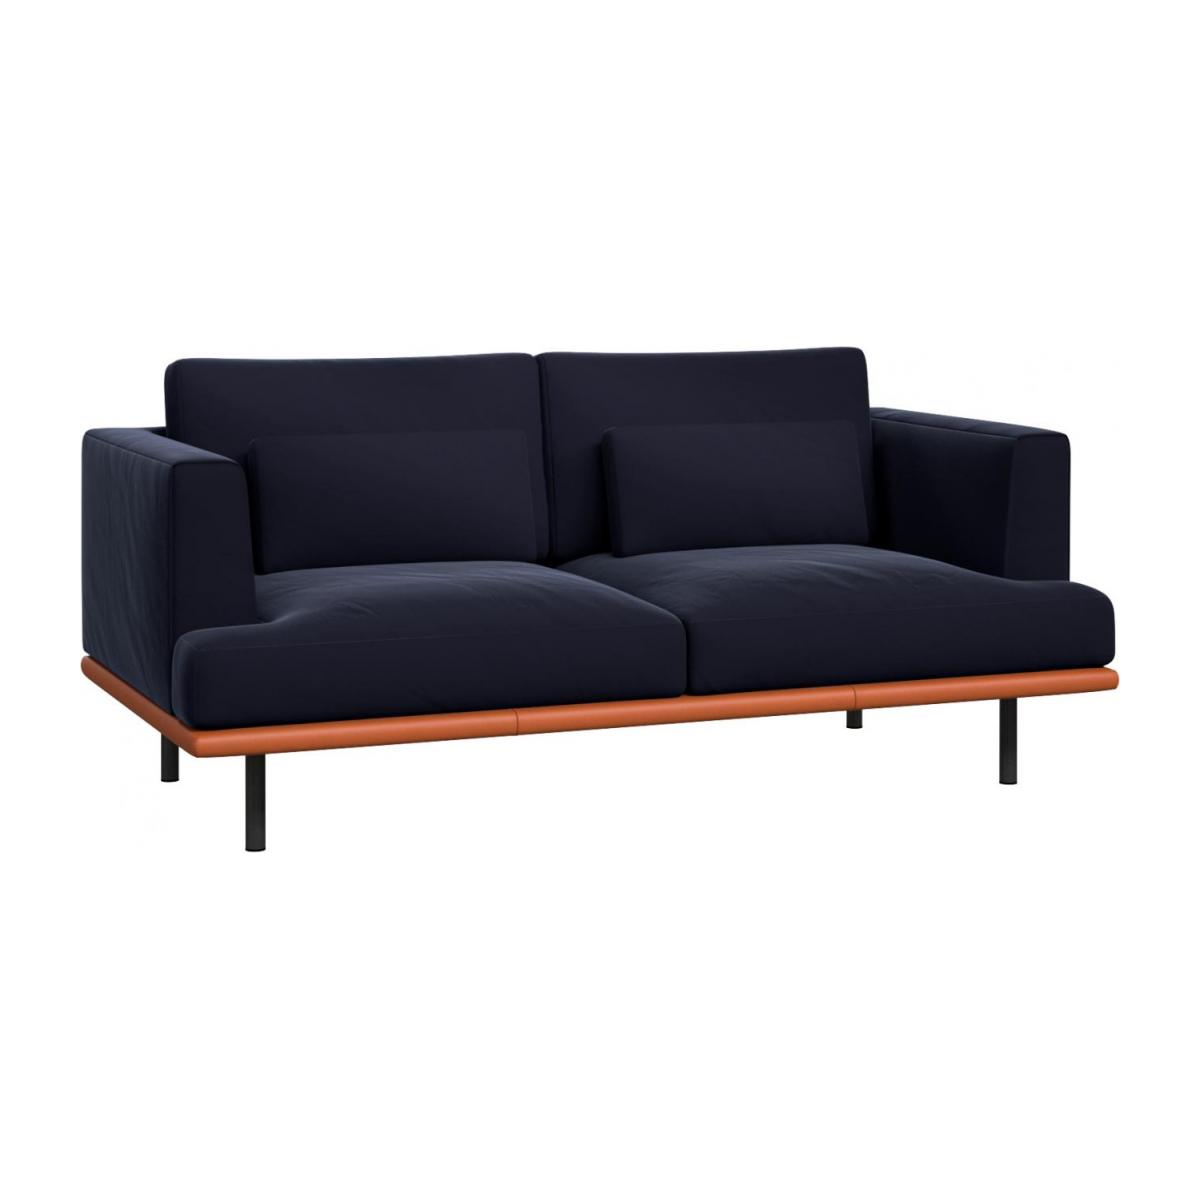 2 seater sofa in Super Velvet fabric, dark blue with base in brown leather n°1